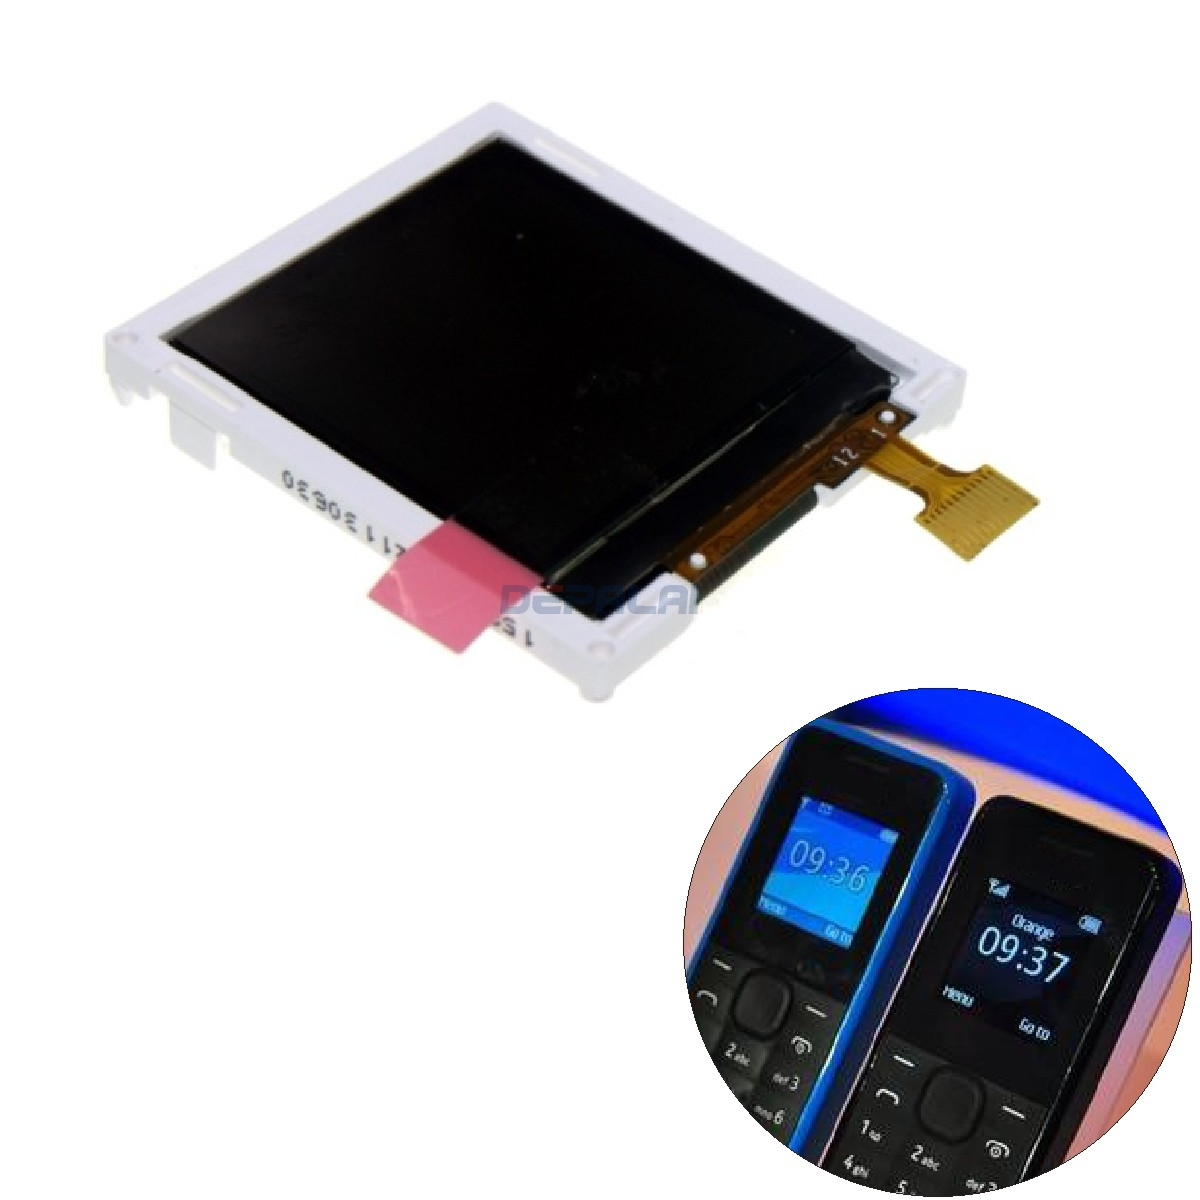 Replacement Repair LCD Display For Nokia 1050 N105 105 RM-908 RM-1134